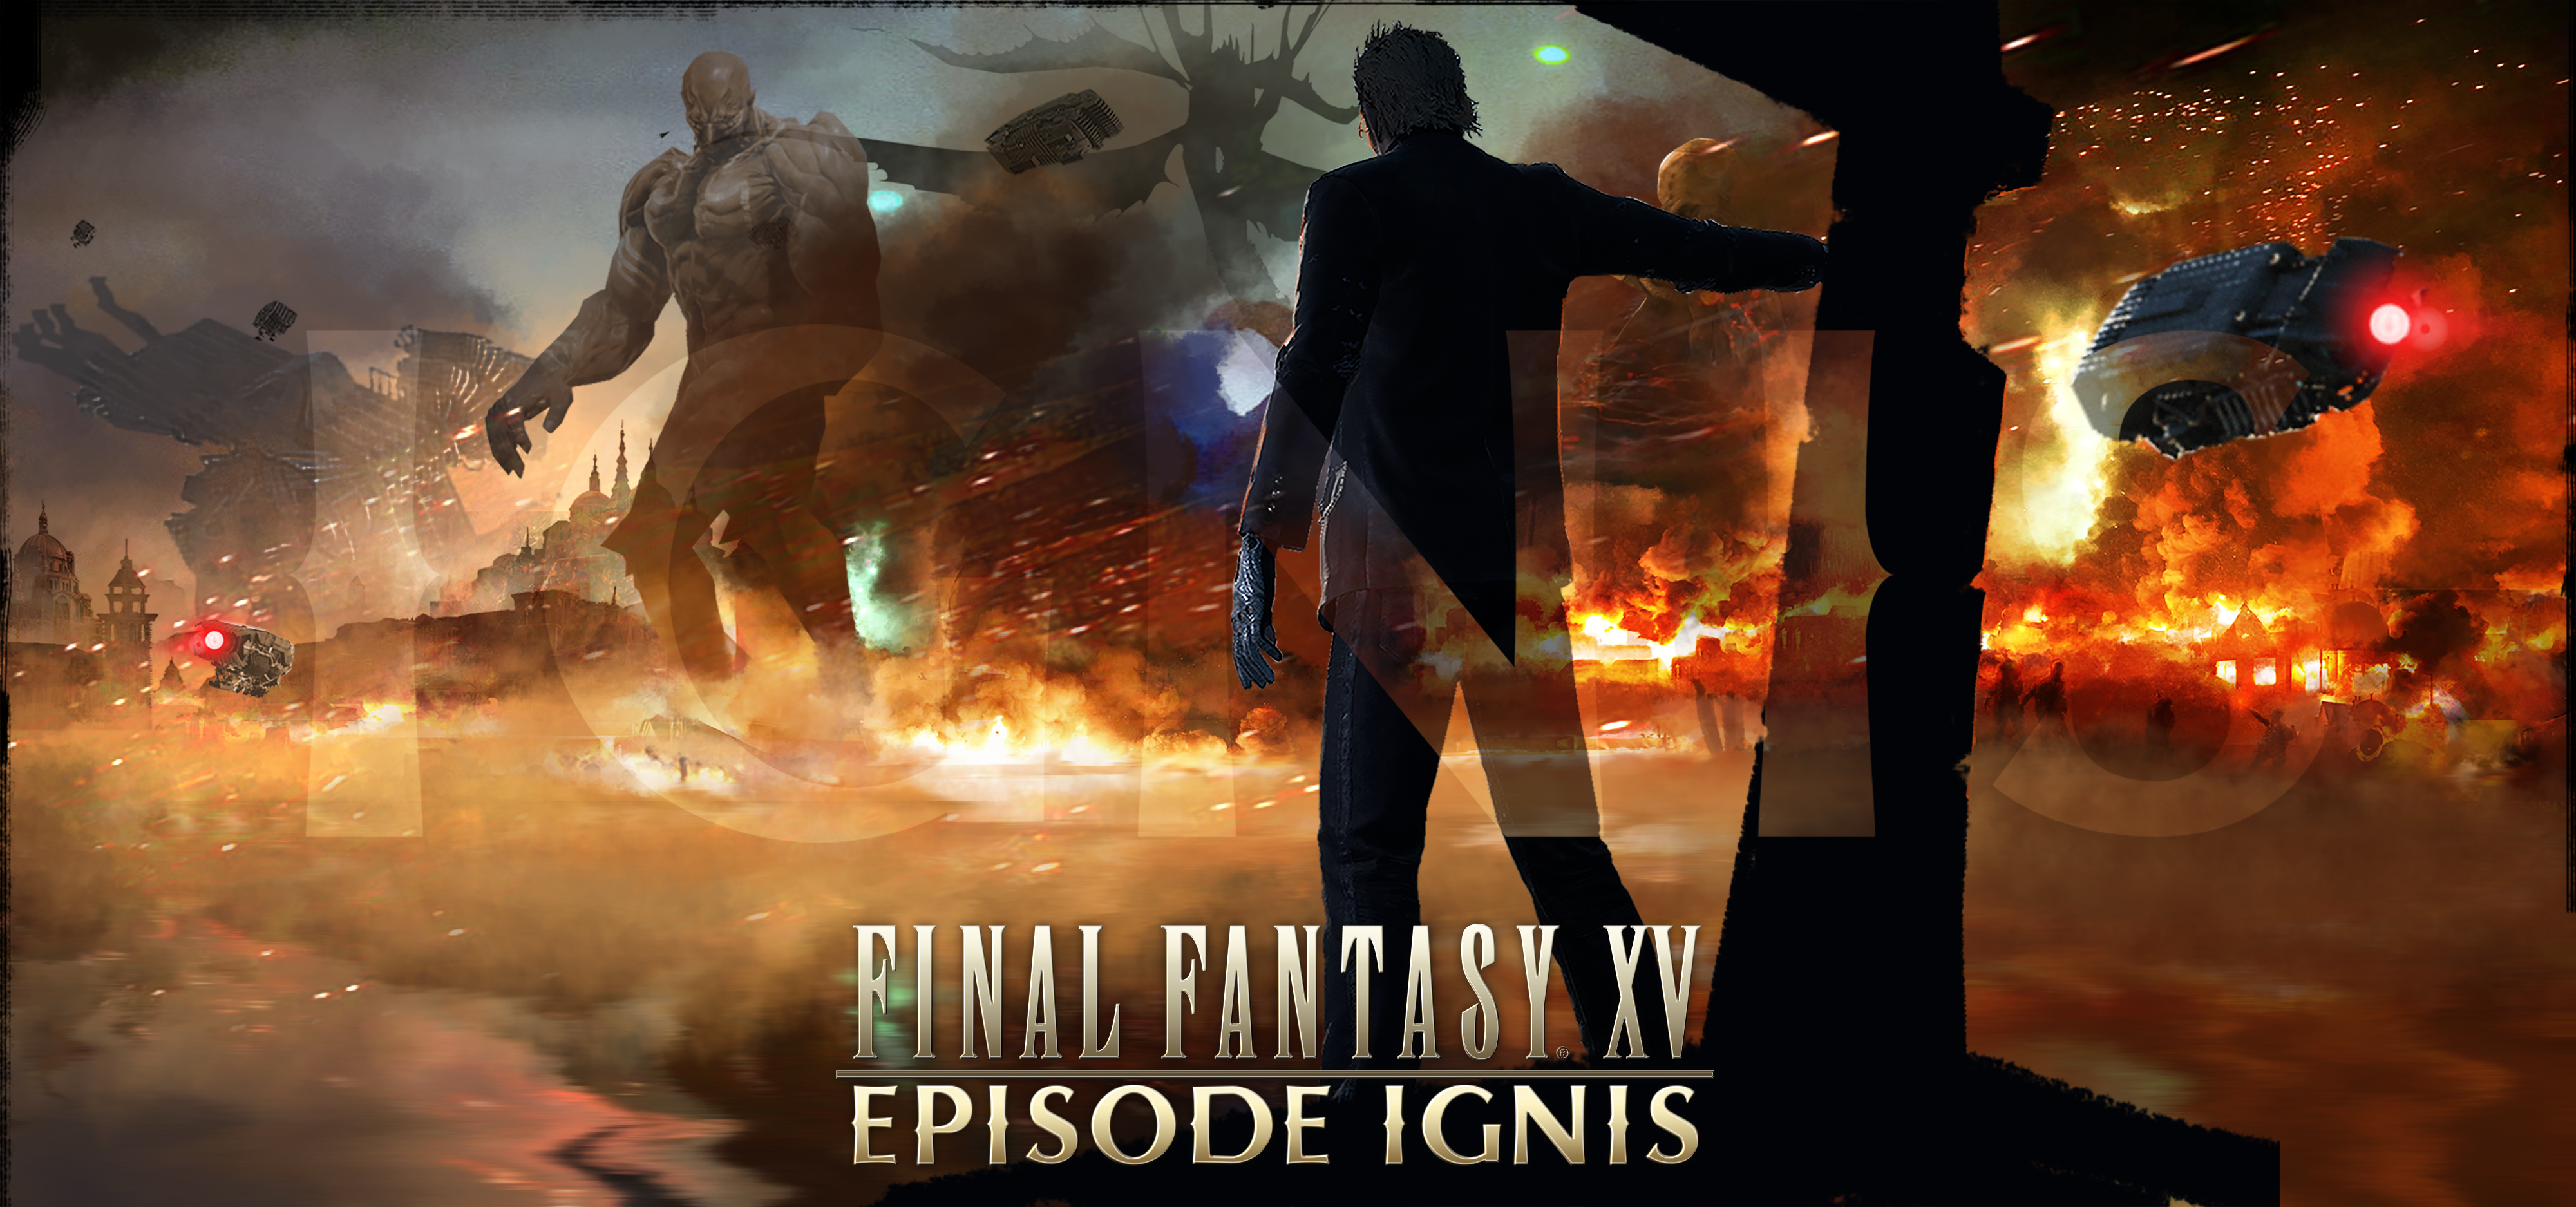 Episode Ignis Review: Final Fantasy XV's Best DLC Yet